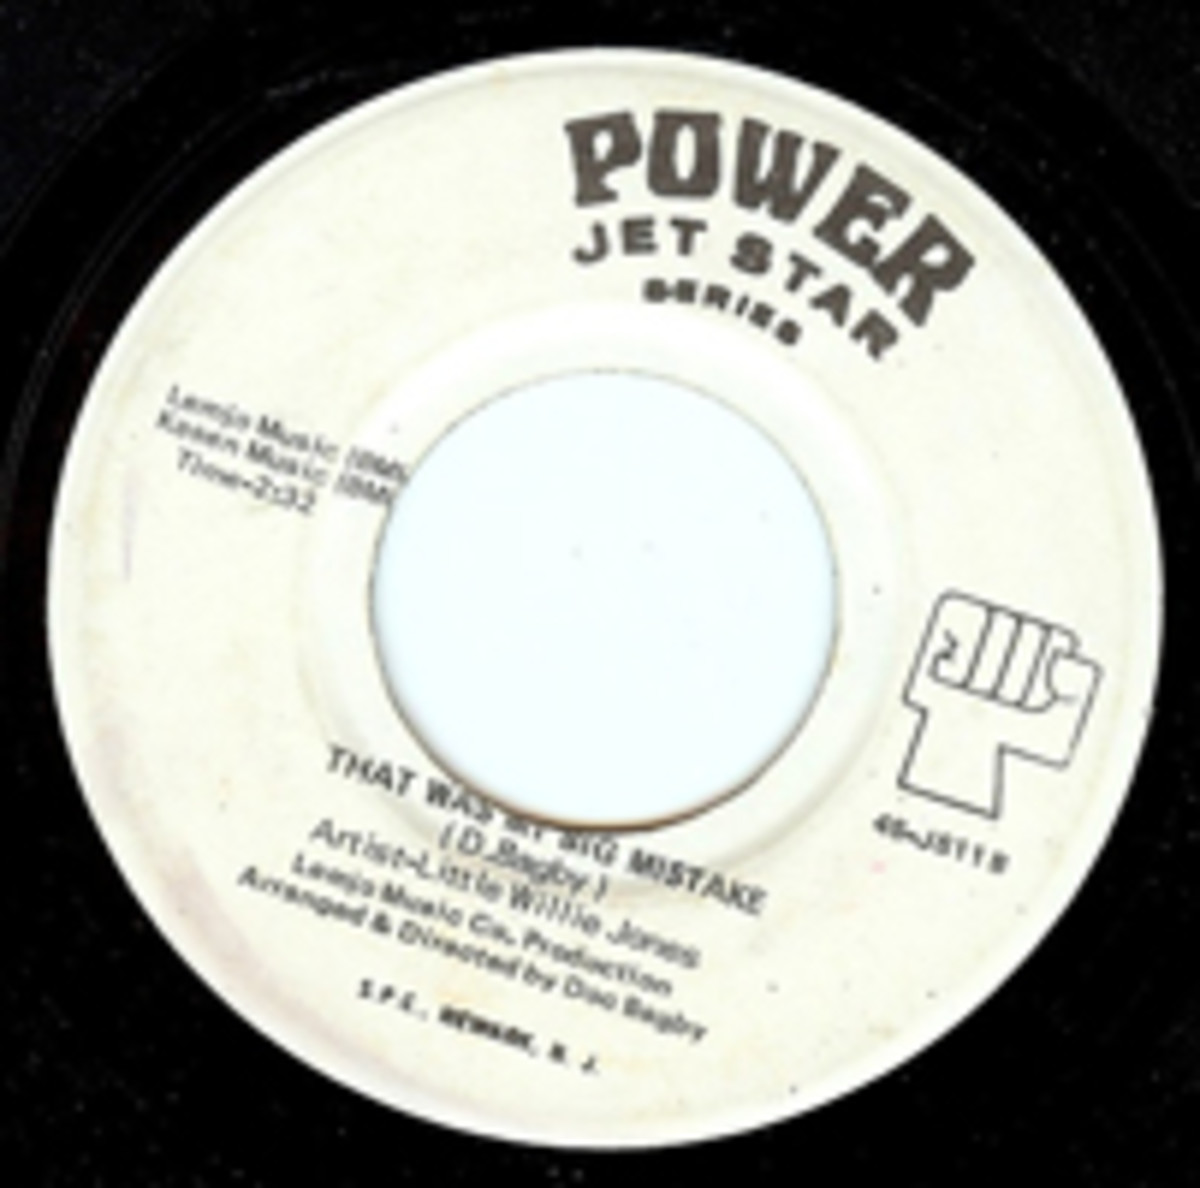 Little Willie Jones Power Jet Star 45